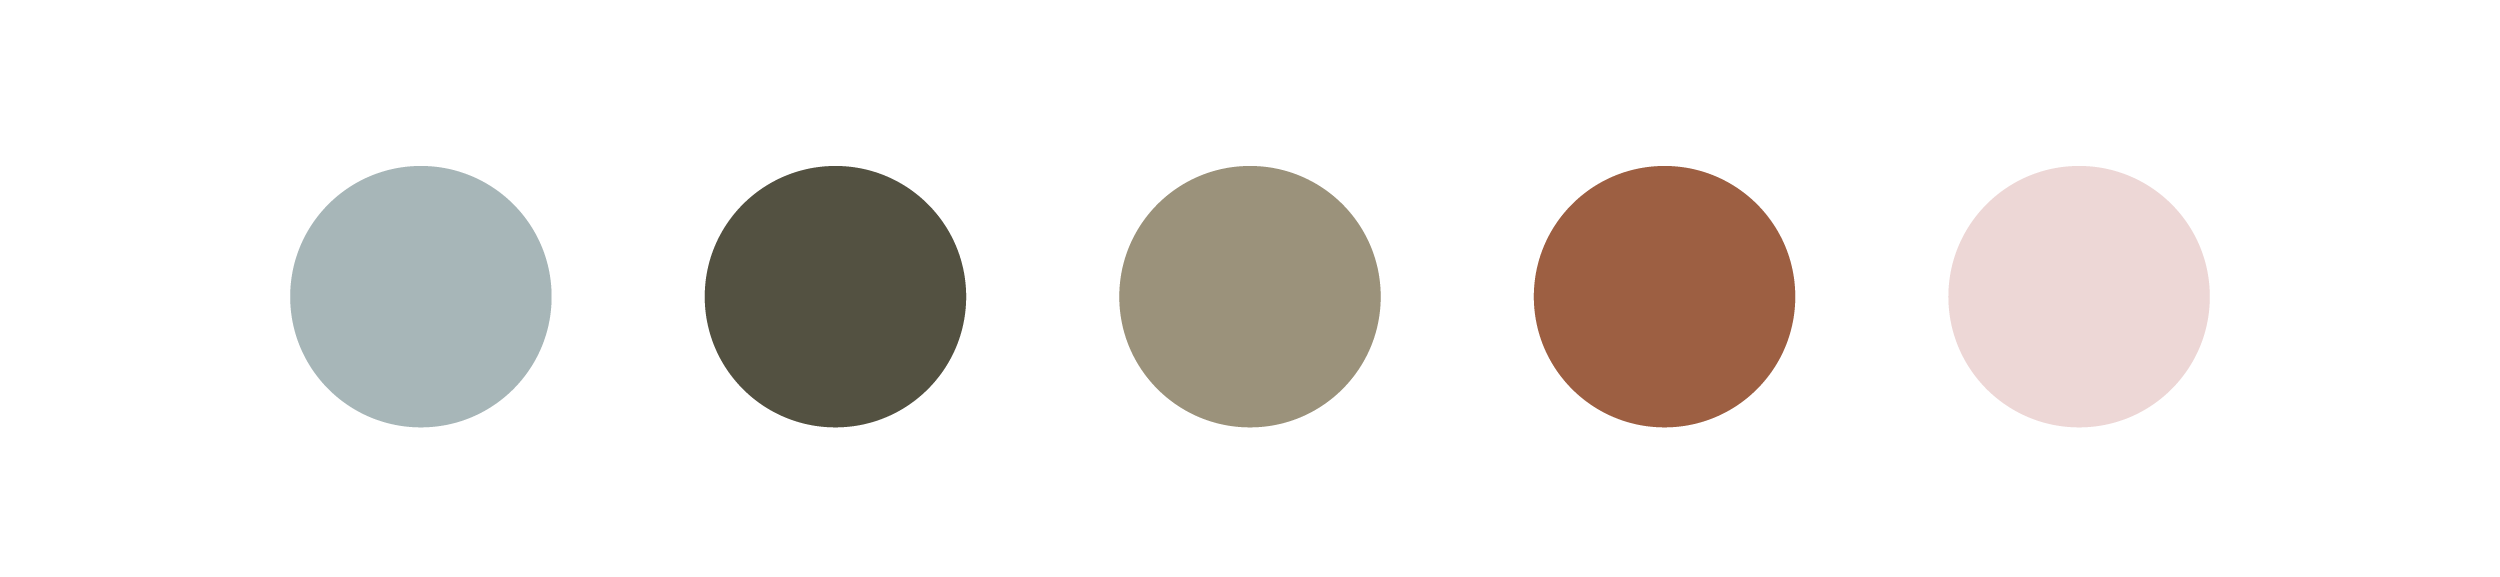 Blog_Swatches-01.png